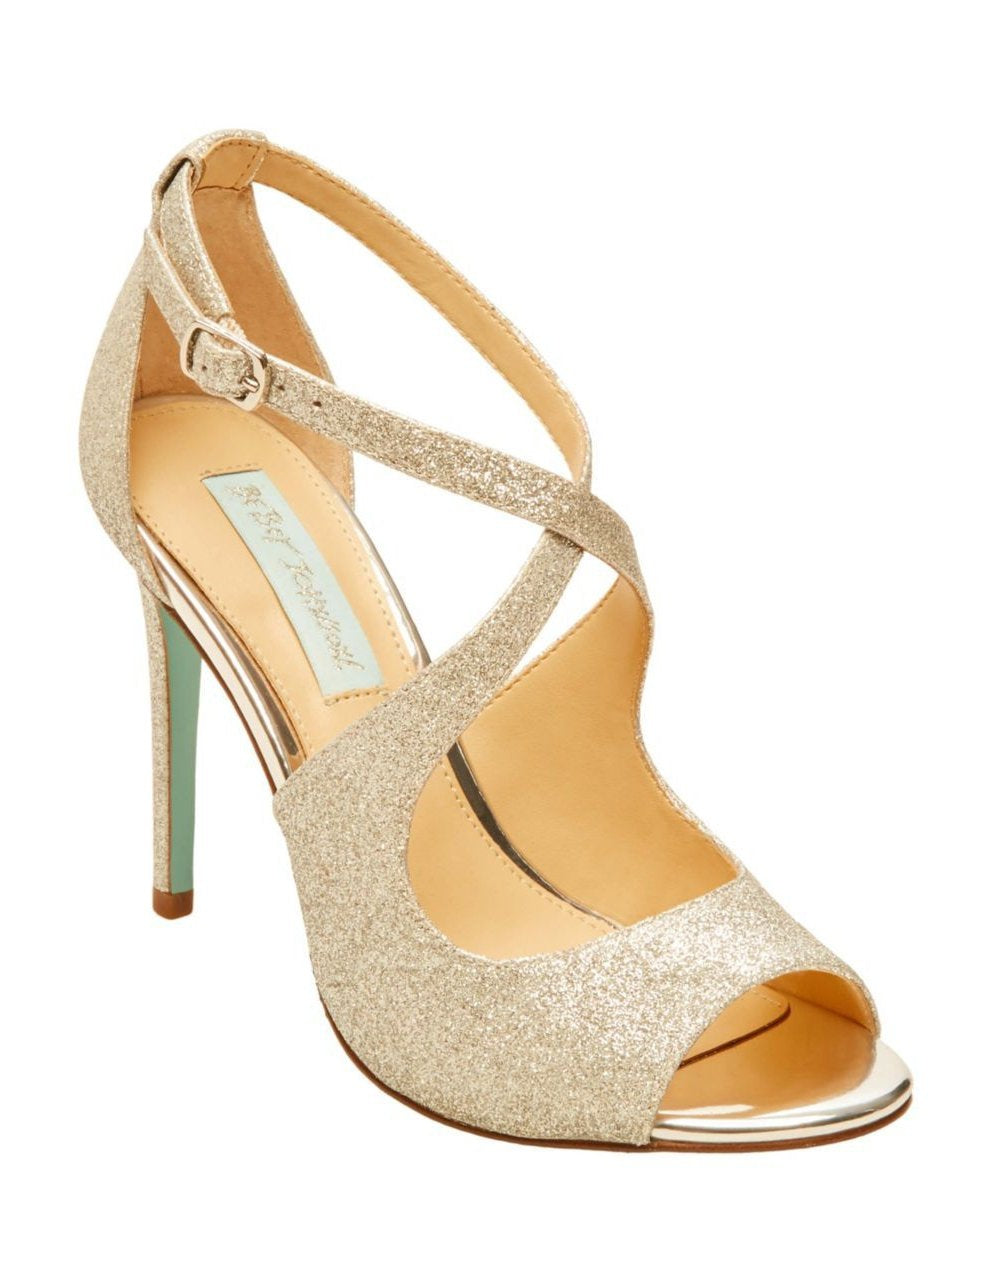 SB-TACIE SILVER GLITTER - SHOES - Betsey Johnson